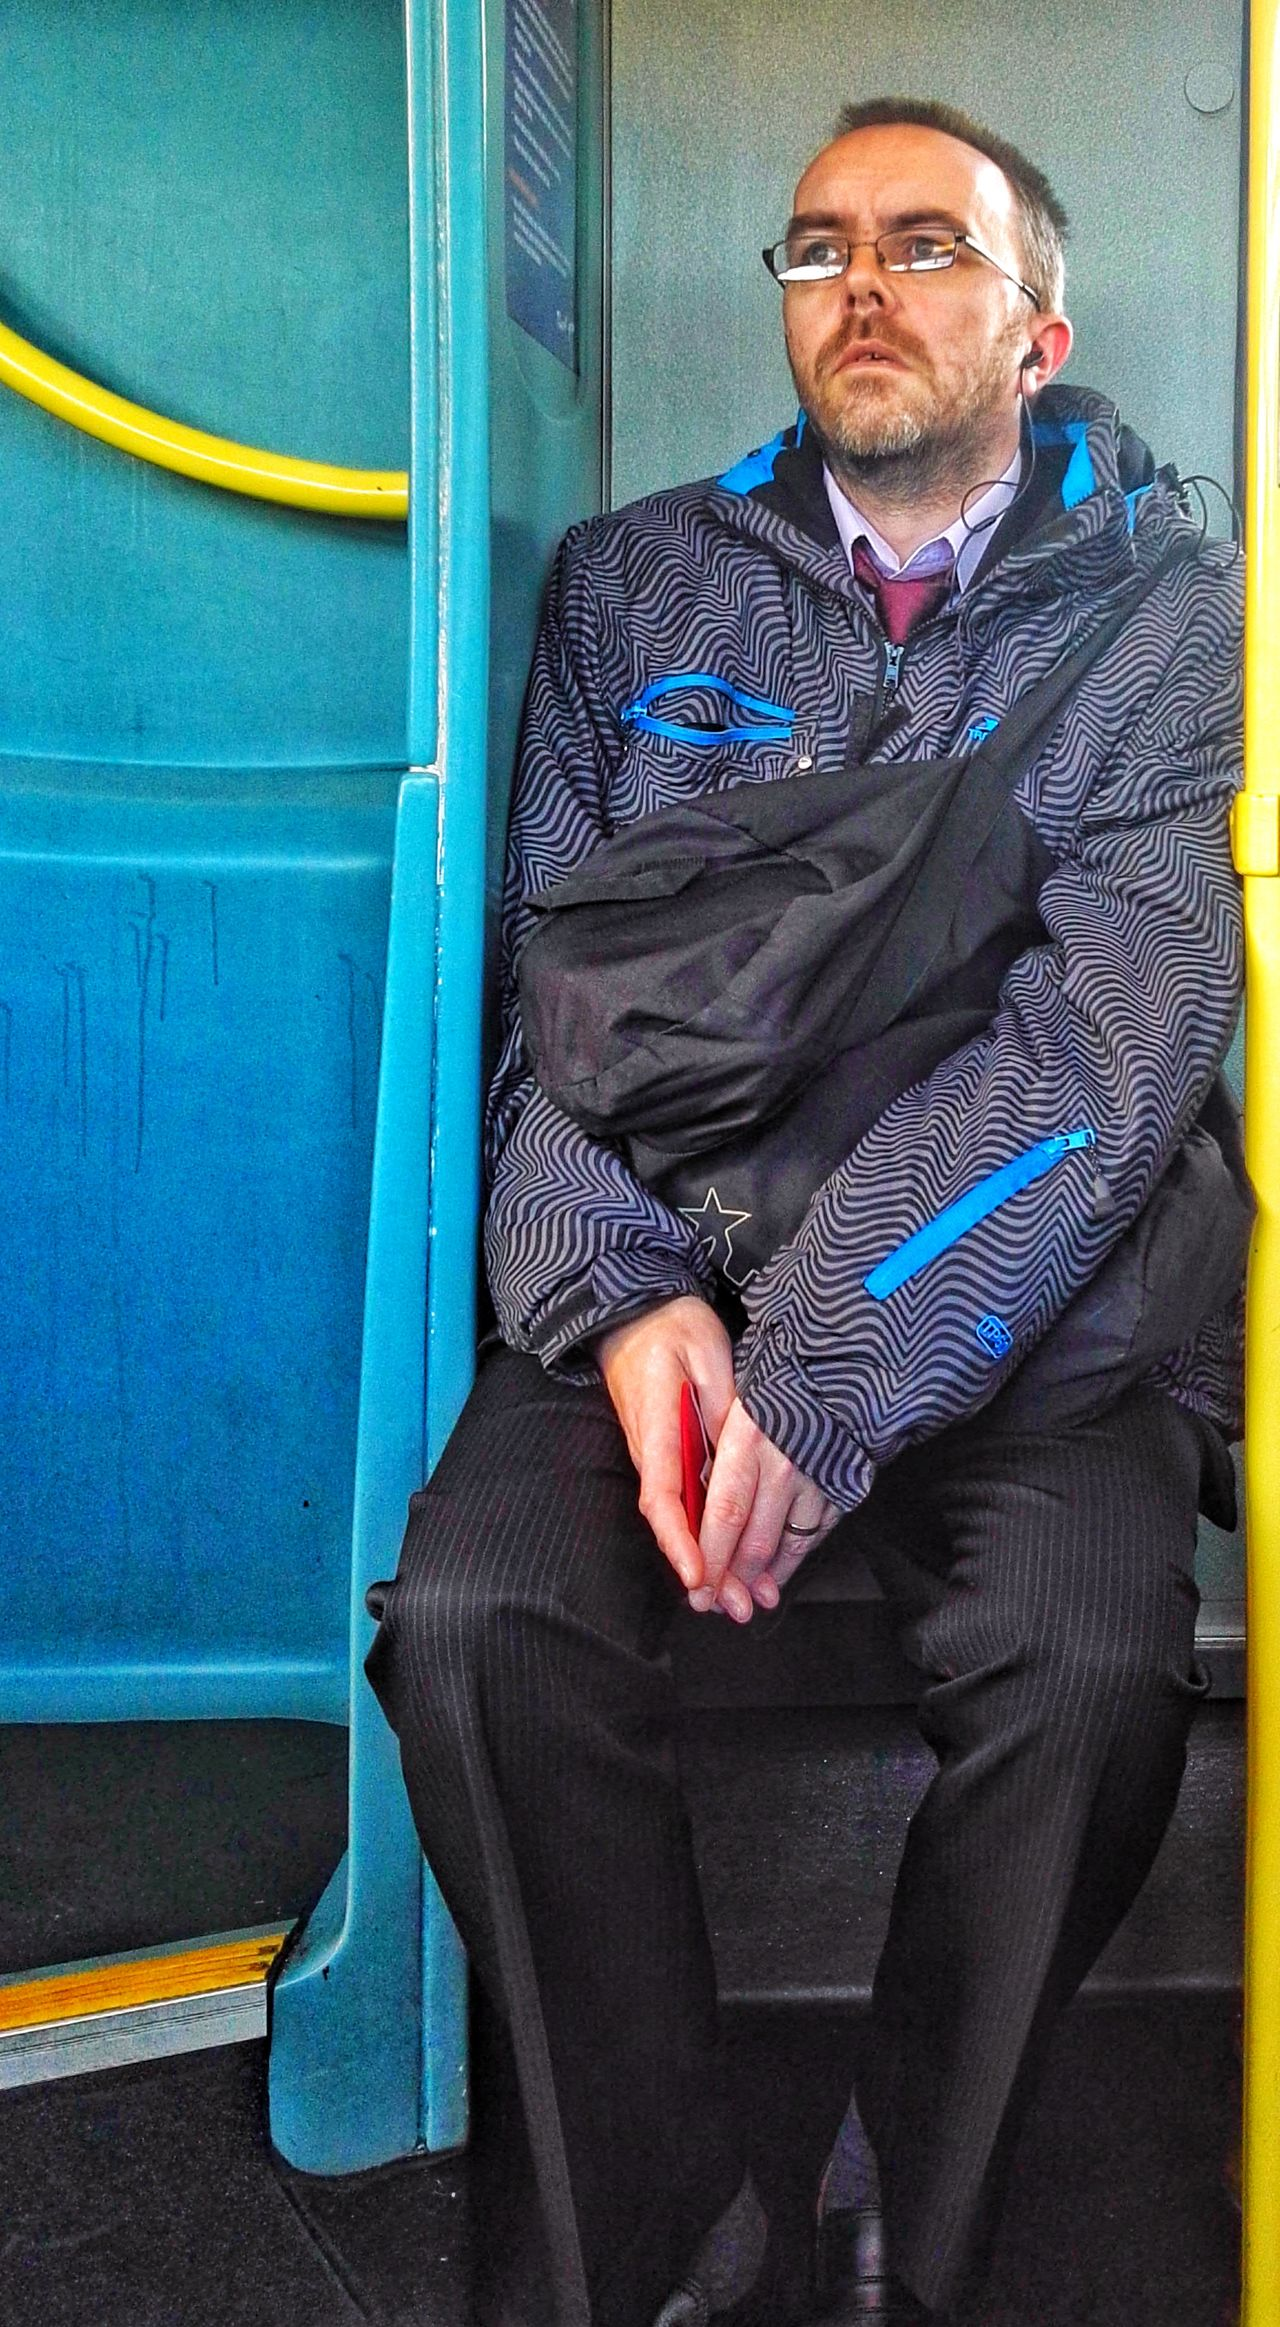 Only Men One Man Only Adults Only One Person Looking At Camera Sitting Senior Adult Business Adult Businessman Portrait People Real People Outdoors Suit Close-up Day Strangers In Transit Commuter Bus Stop, Candid Photography Just Look Up